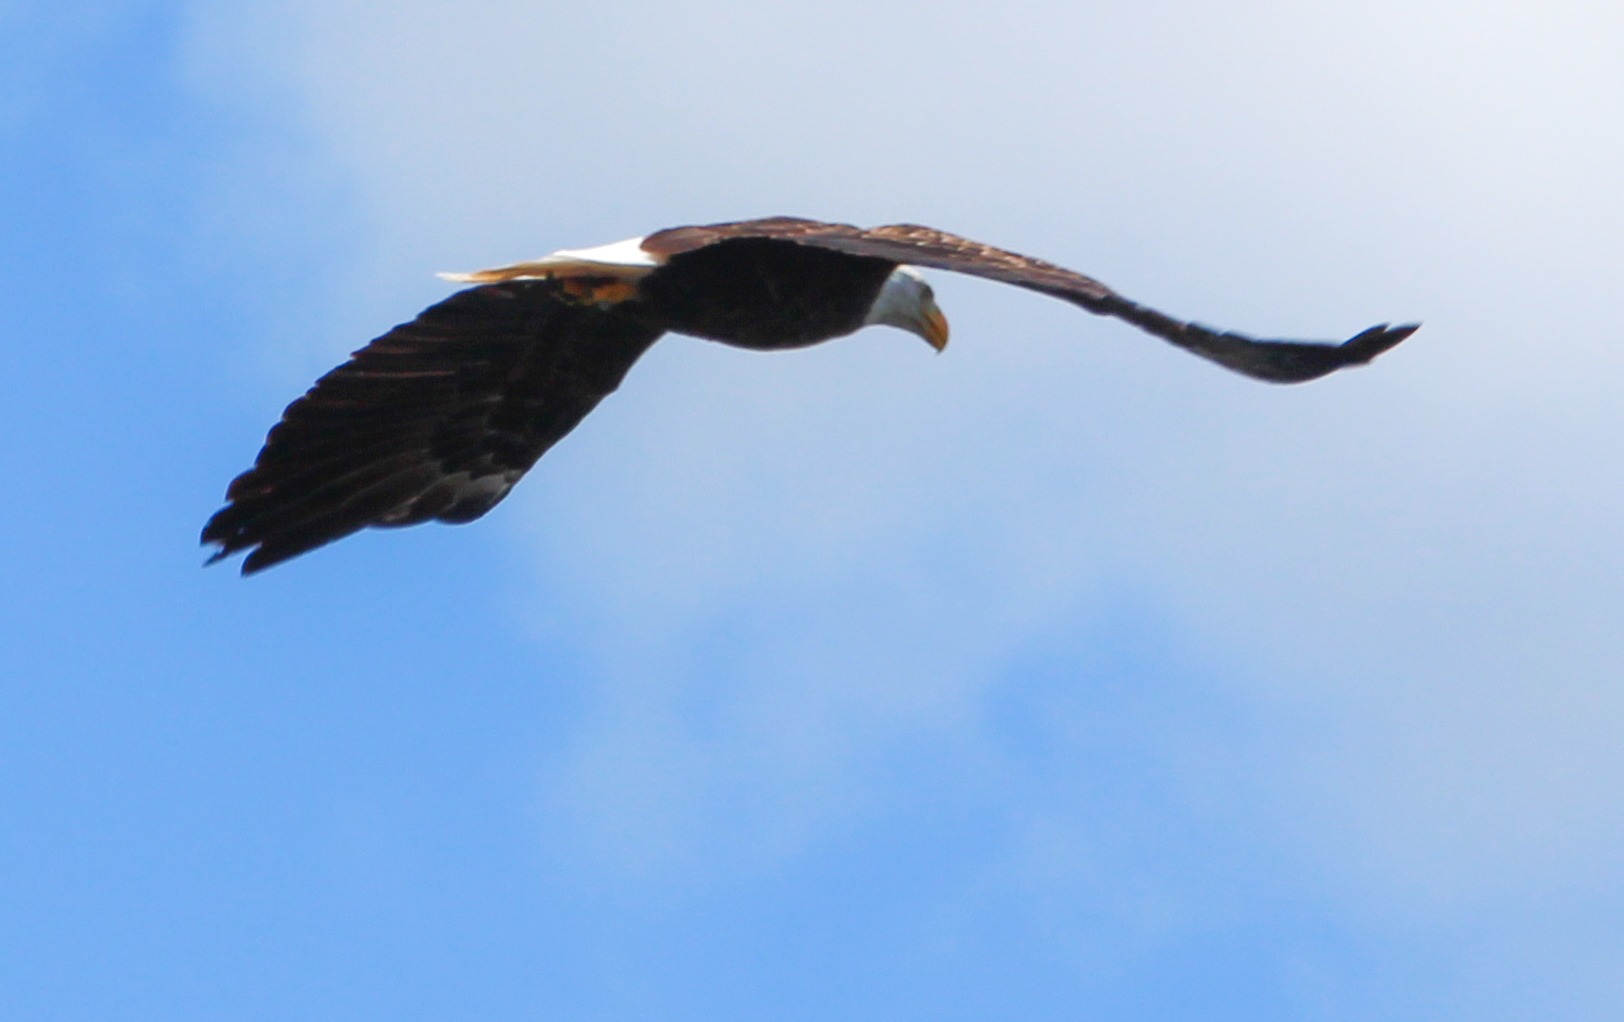 We caught another sight of our friend, Mr. Bald Eagle